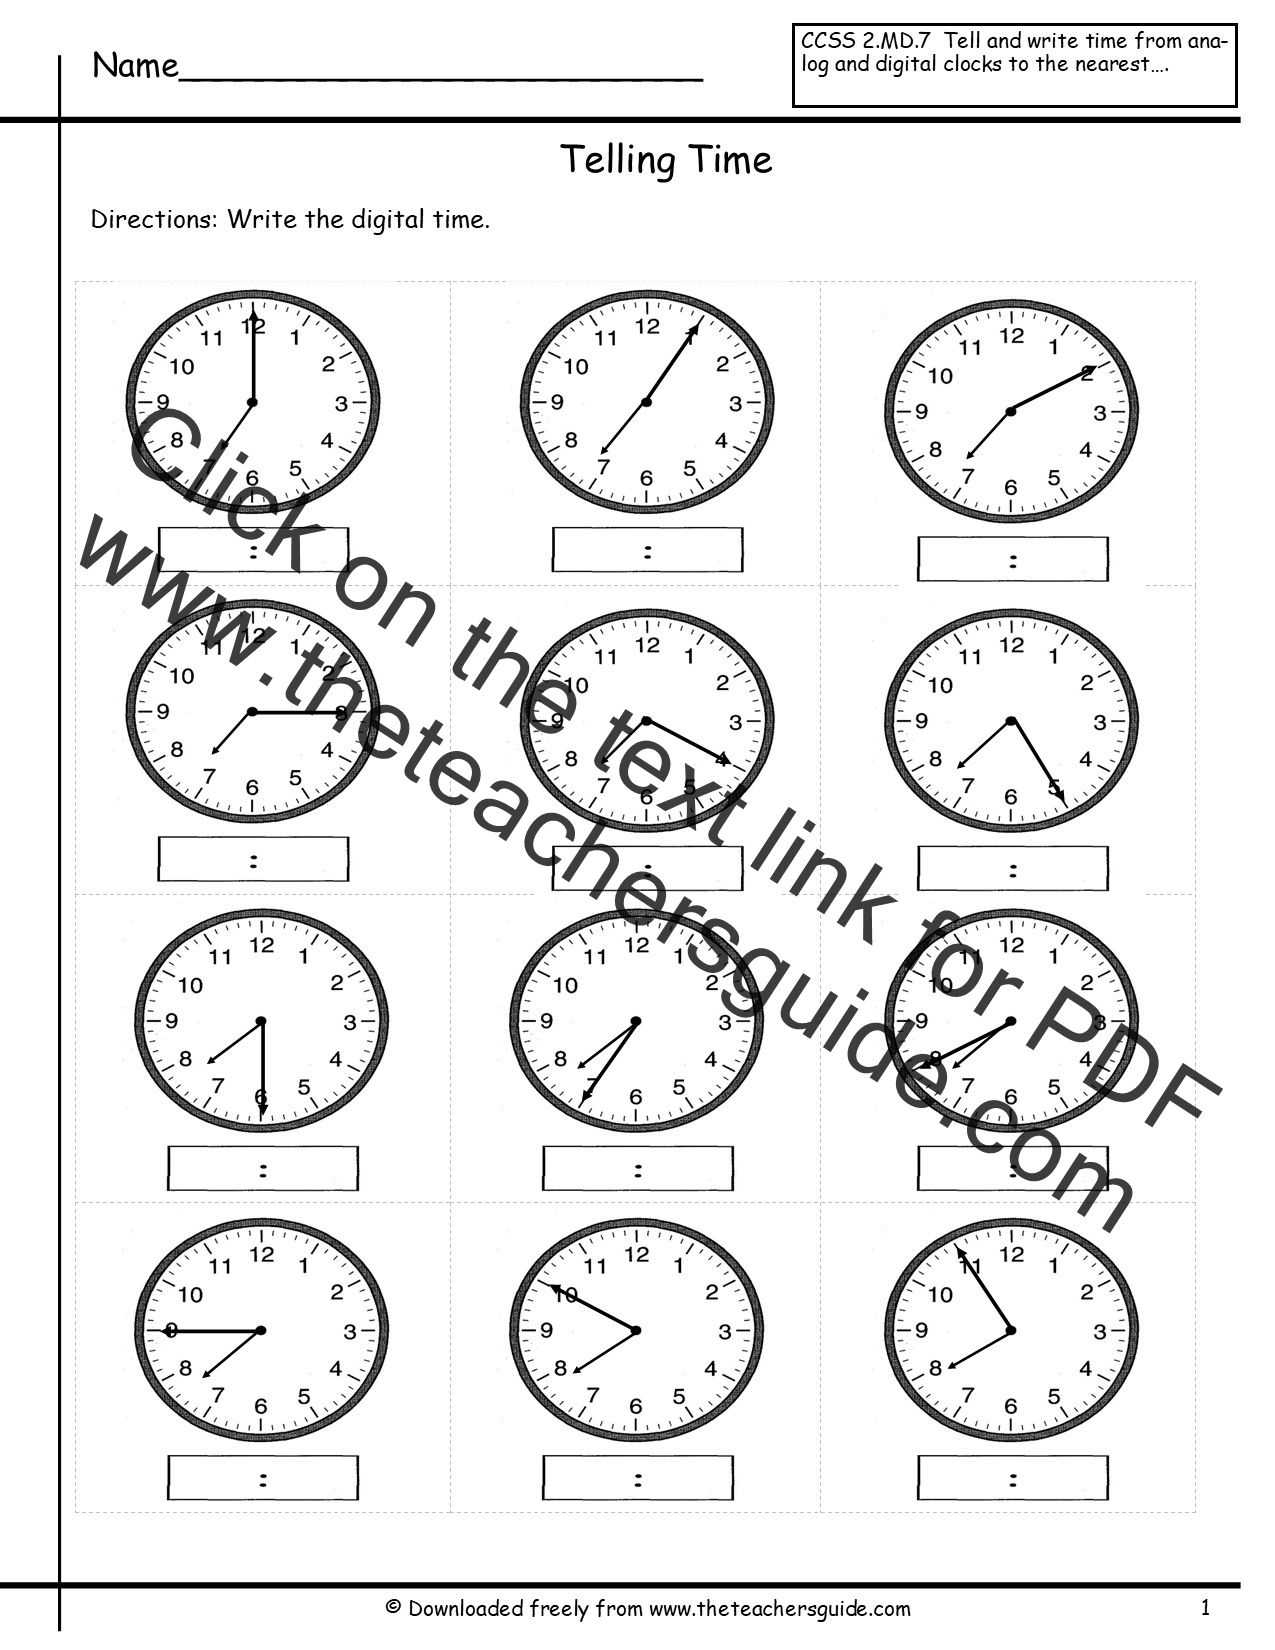 Aldiablosus  Scenic Telling Time Worksheets From The Teachers Guide With Lovely Telling Time Worksheets With Comely Free St Grade Reading Worksheets Also Pure Substances And Mixtures Worksheet In Addition Frederick Douglass Worksheets And The Mailbox Worksheets As Well As Subtracting Integers Worksheet Pdf Additionally R Controlled Worksheets From Theteachersguidecom With Aldiablosus  Lovely Telling Time Worksheets From The Teachers Guide With Comely Telling Time Worksheets And Scenic Free St Grade Reading Worksheets Also Pure Substances And Mixtures Worksheet In Addition Frederick Douglass Worksheets From Theteachersguidecom